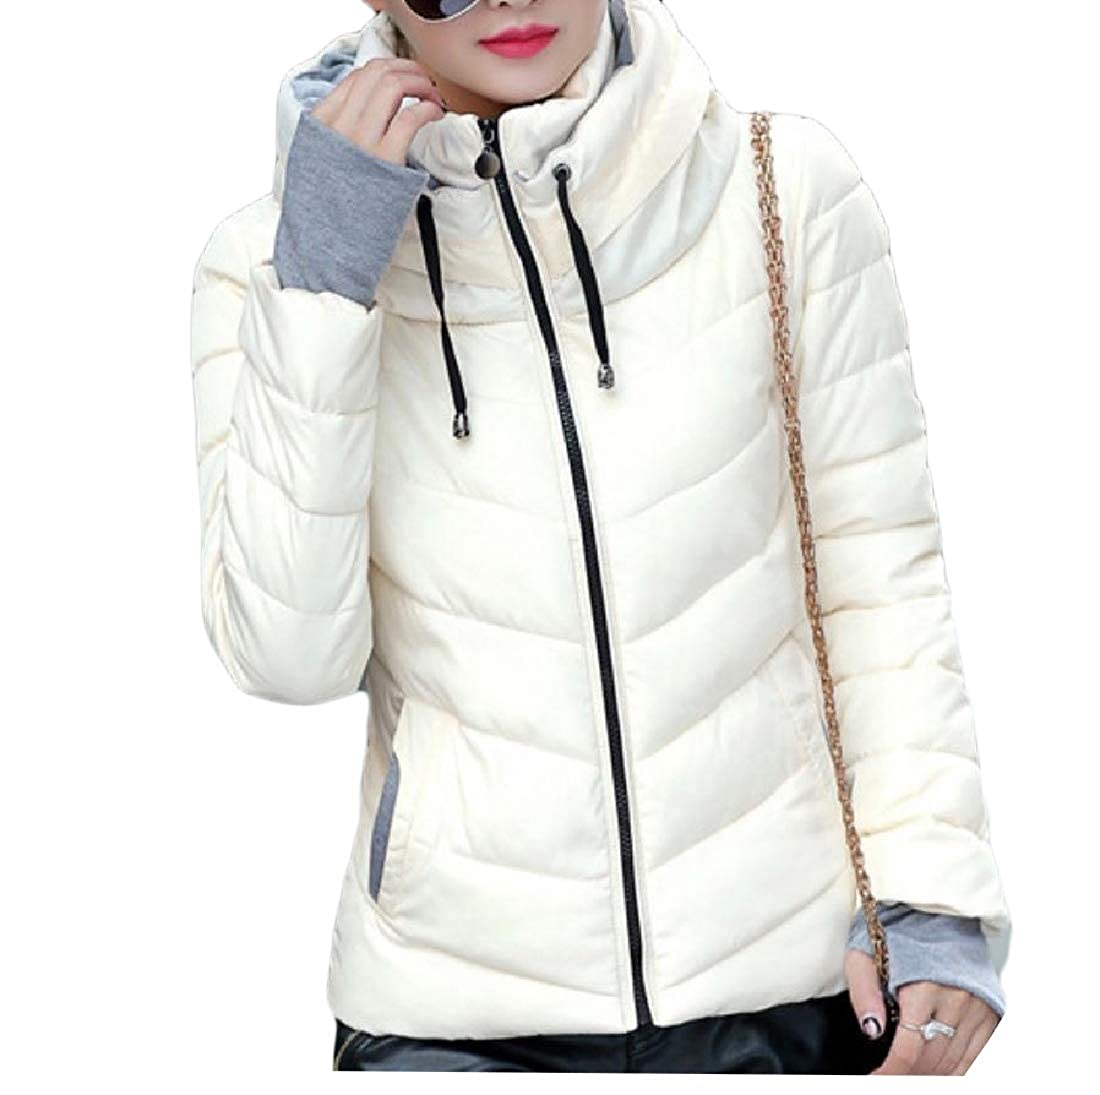 YUNY Womens Outwear Puffer Packable Light Weight Thicken Down Coat White S